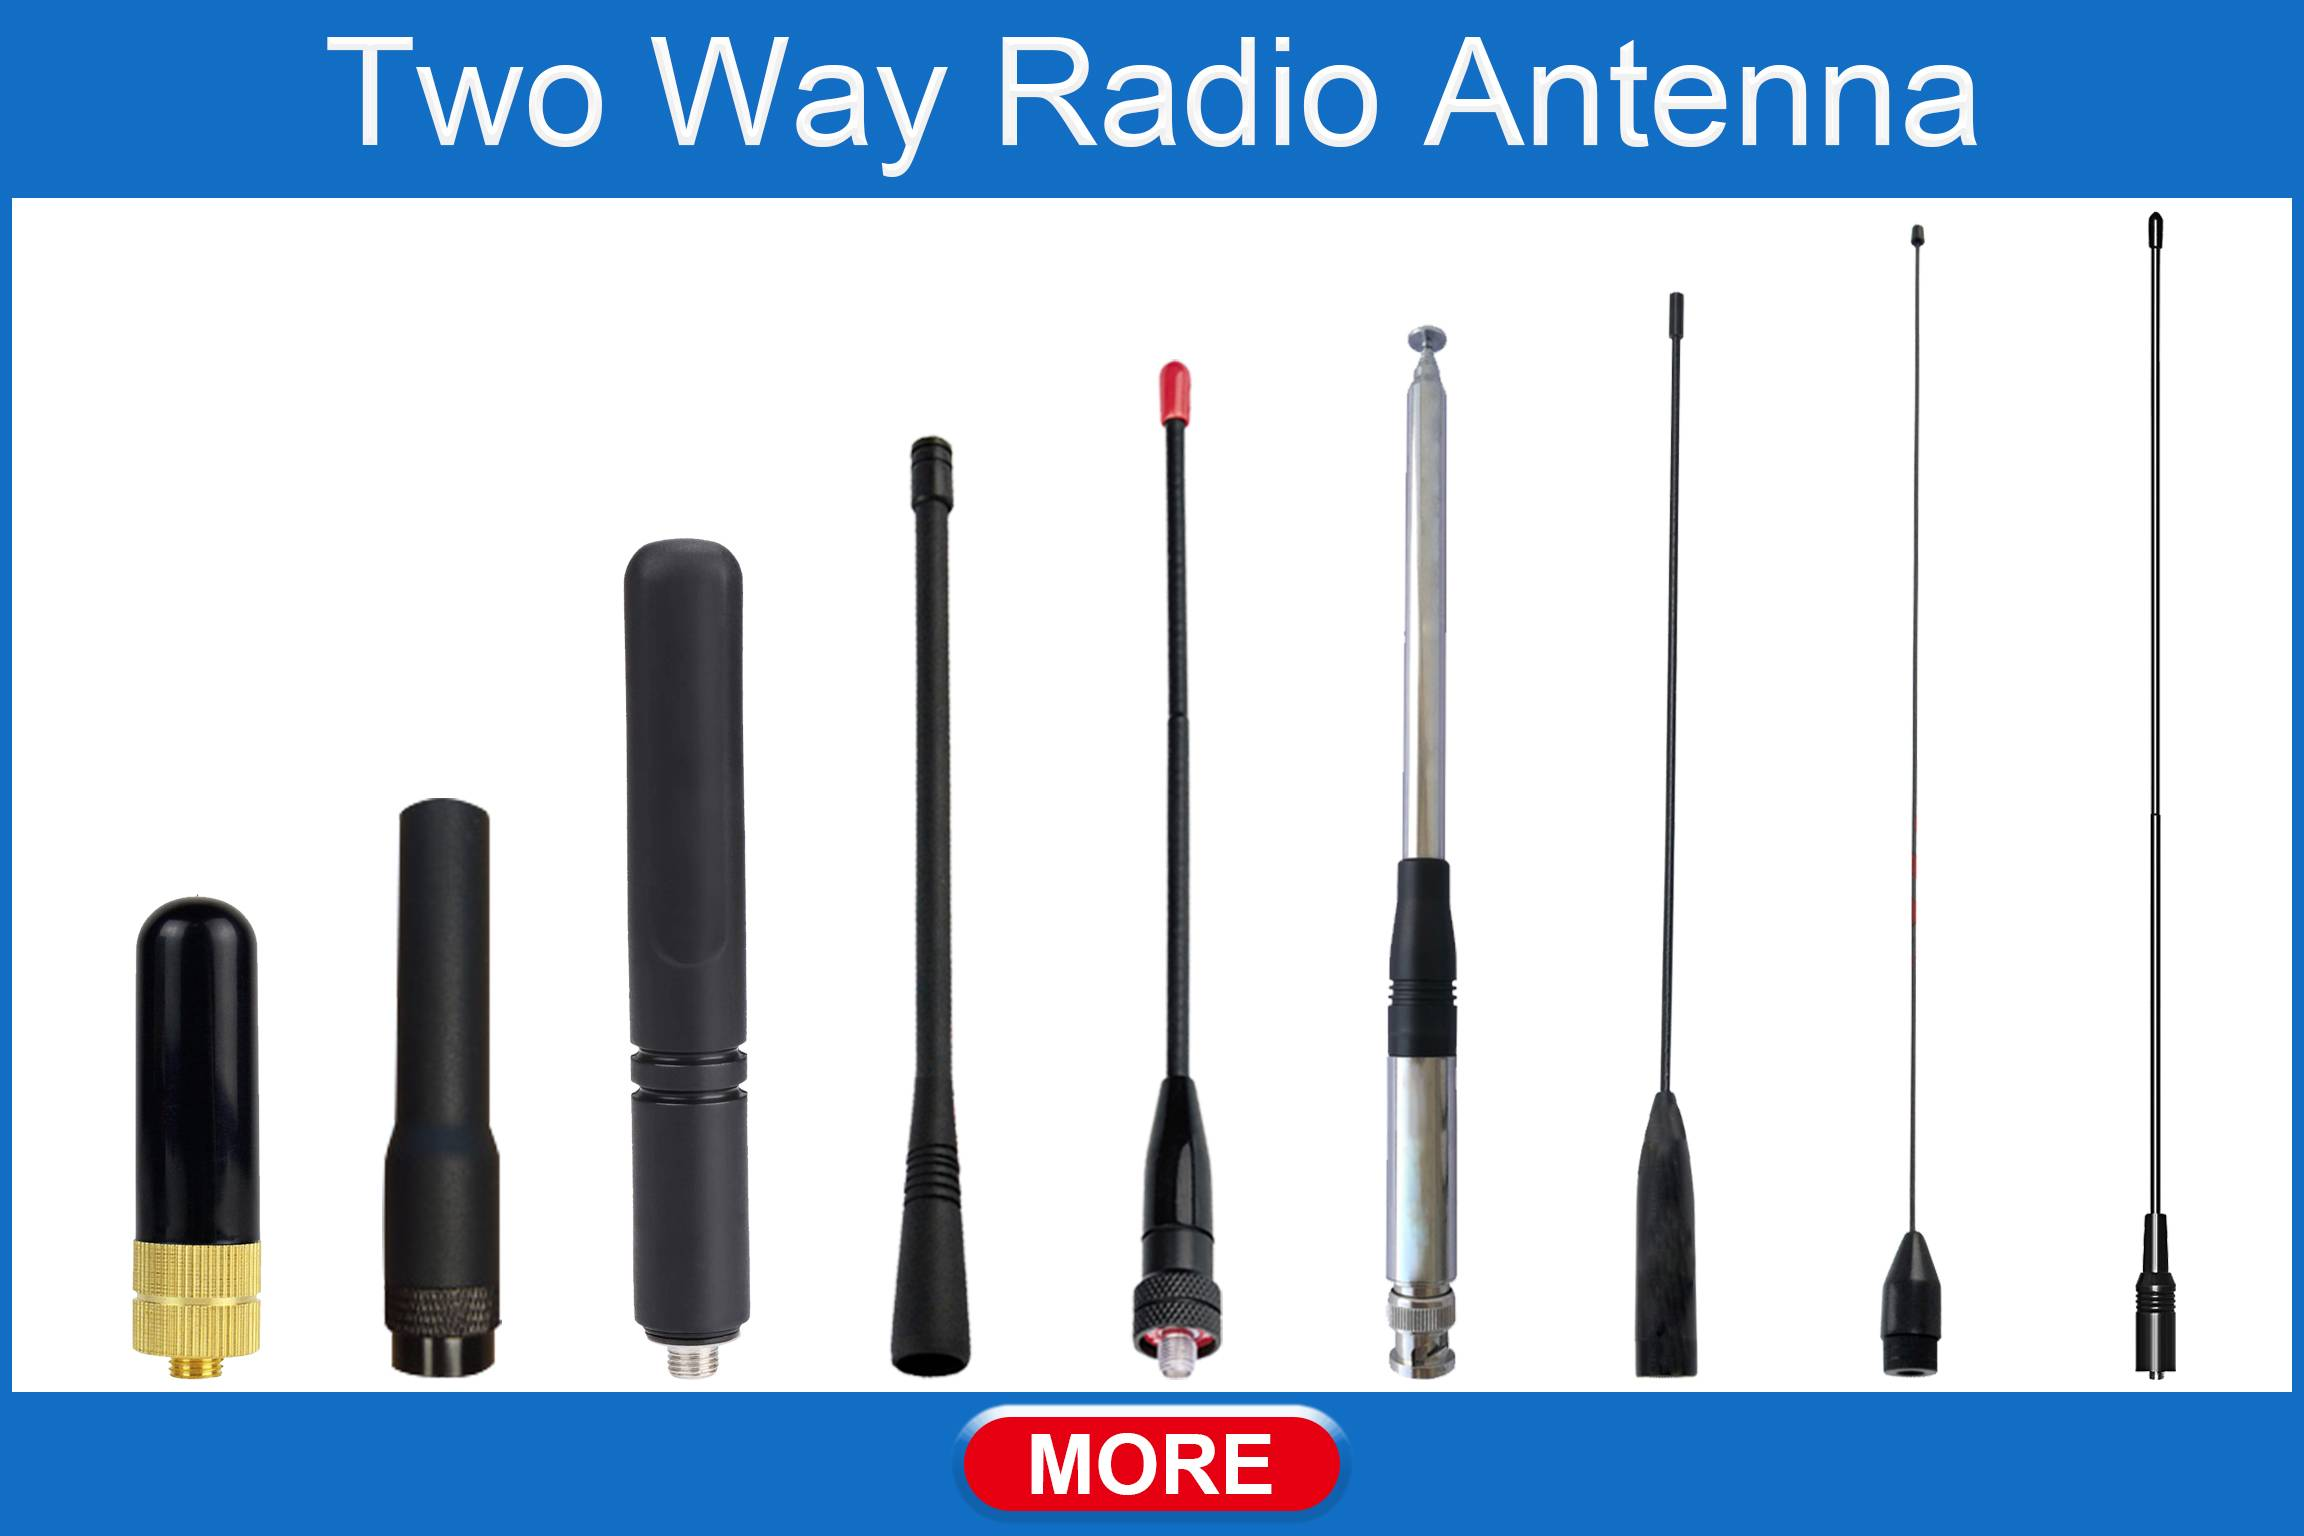 Two Way Radio Antenne